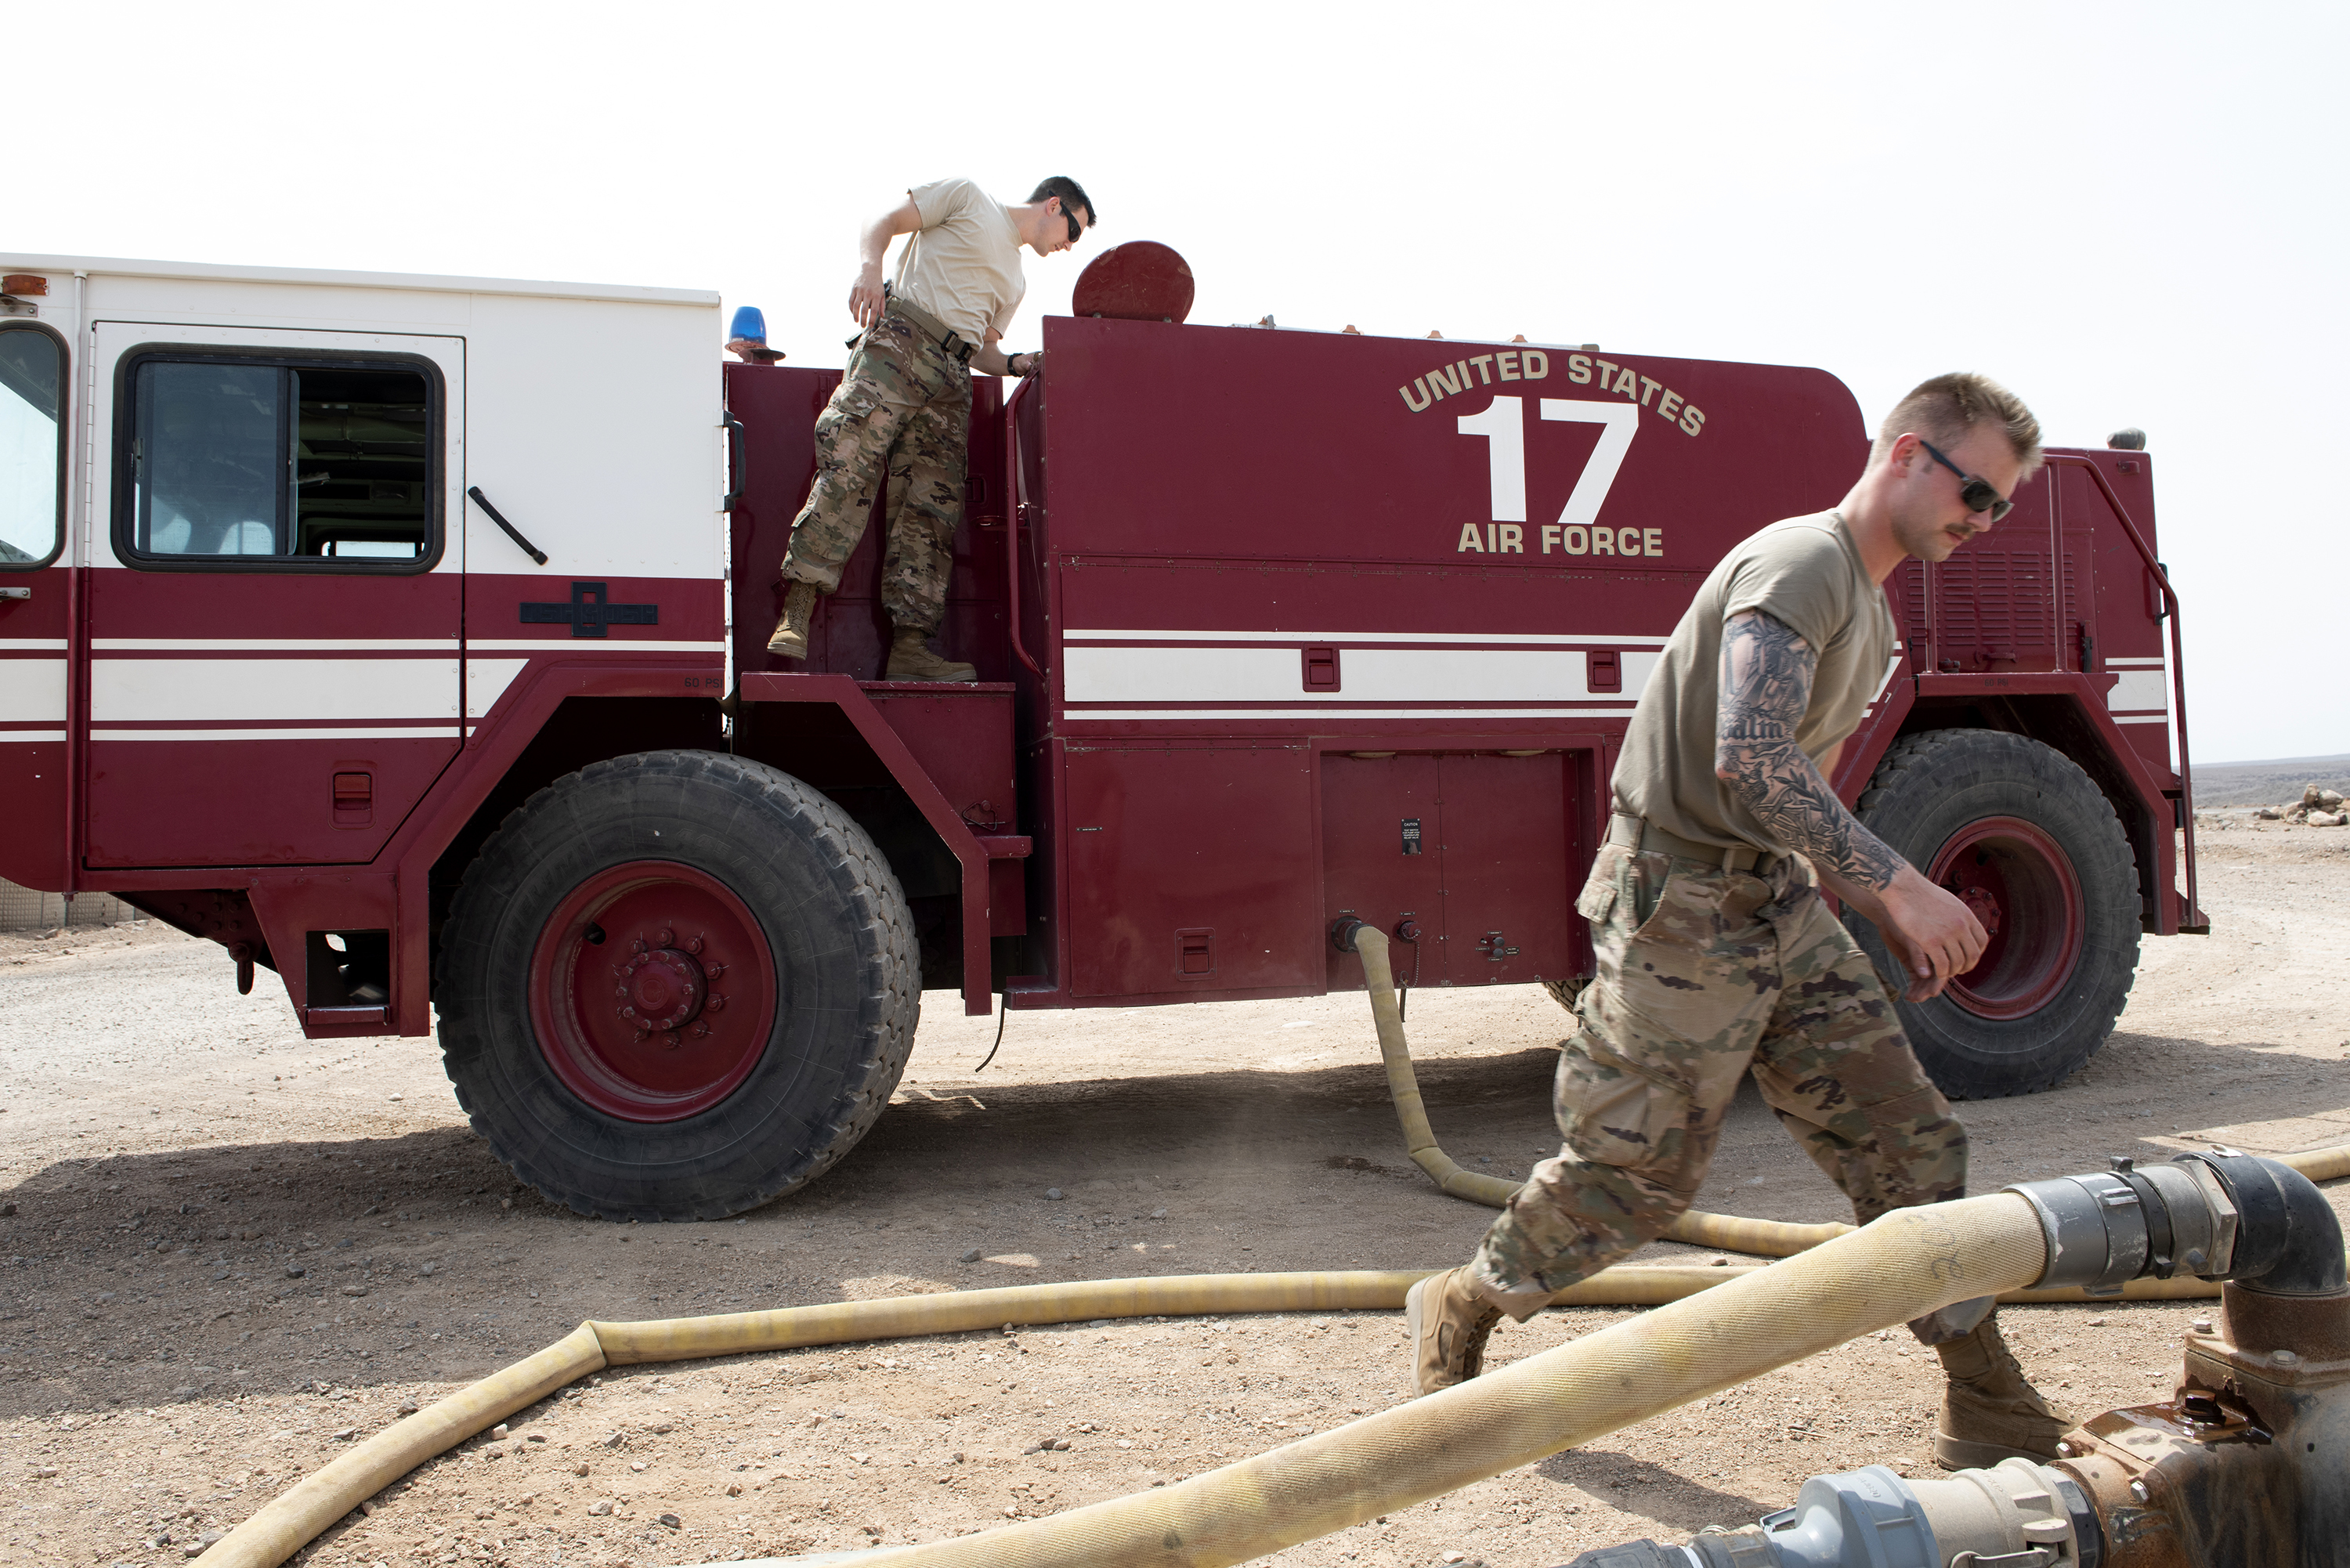 U.S. Air Force firefighters with the 449th Air Expeditionary Group and Combined Joint Task Force Horn of Africa fill the tank on a P-19B fire truck, outside Djibouti City, Djibouti, Aug. 20, 2018. The Airmen preform daily inspections on their trucks and equipment in order to maintain readiness. (U.S. Air National Guard photo by Master Sgt. Sarah Mattison)